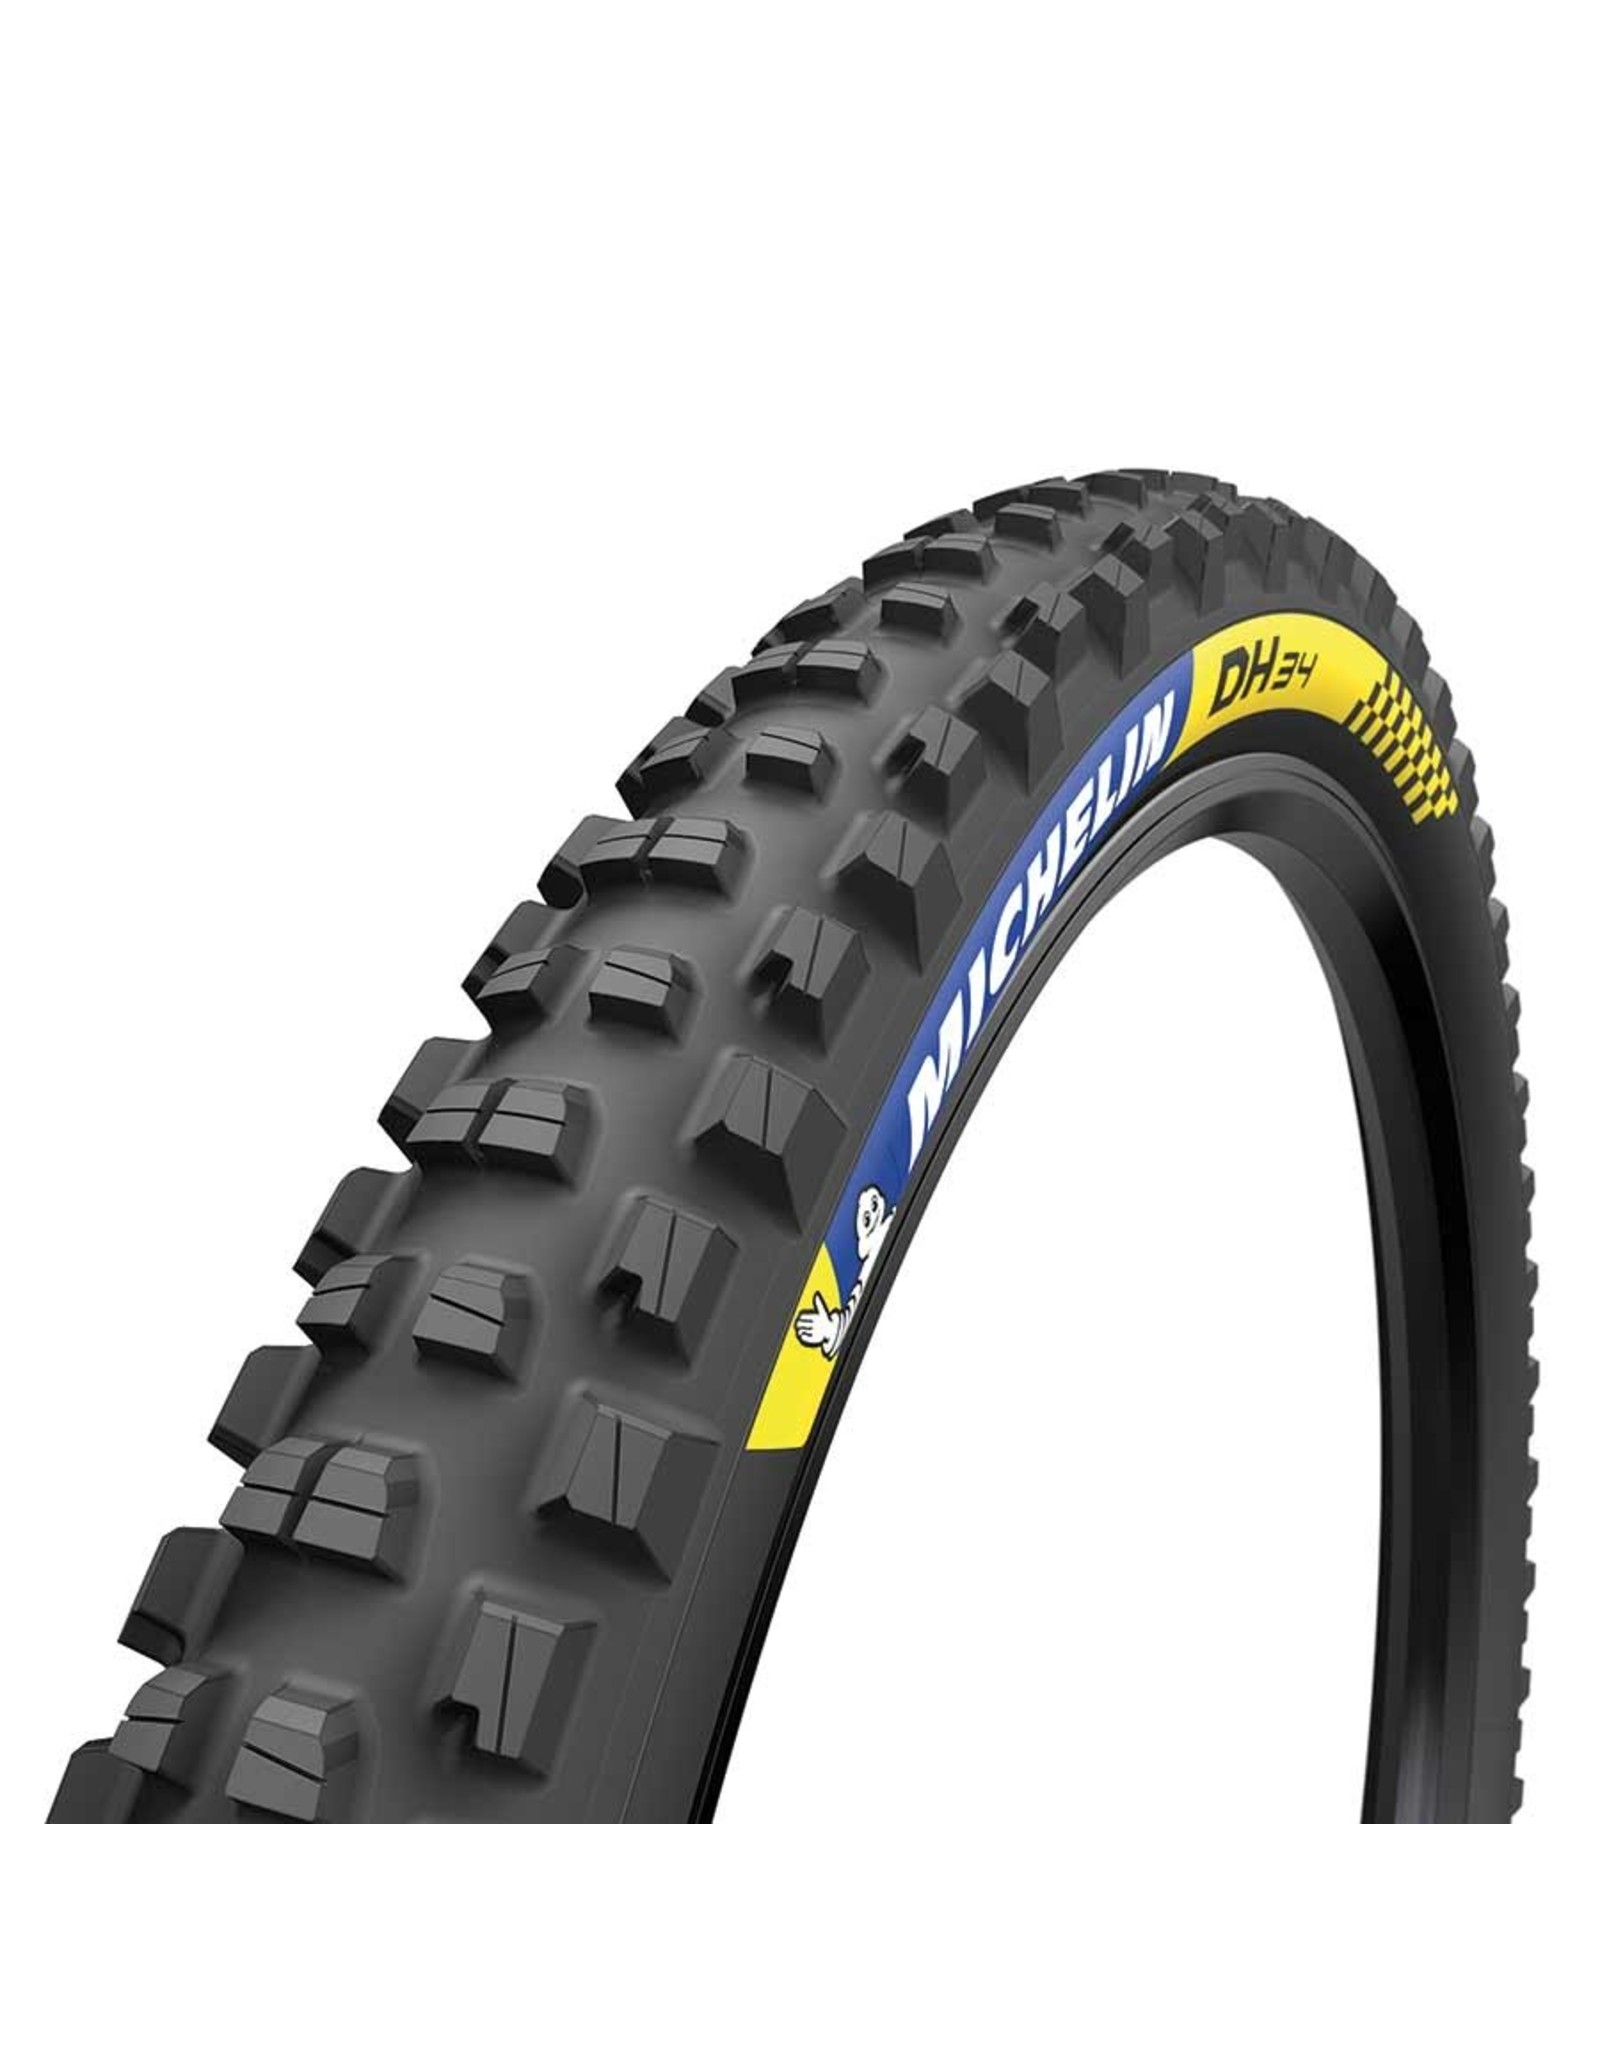 Michelin Michelin, DH34, Tire, 26''x2.40, Wire, Tubeless Ready, MAGI-X, Downhill Shield, 2x55TPI, Black